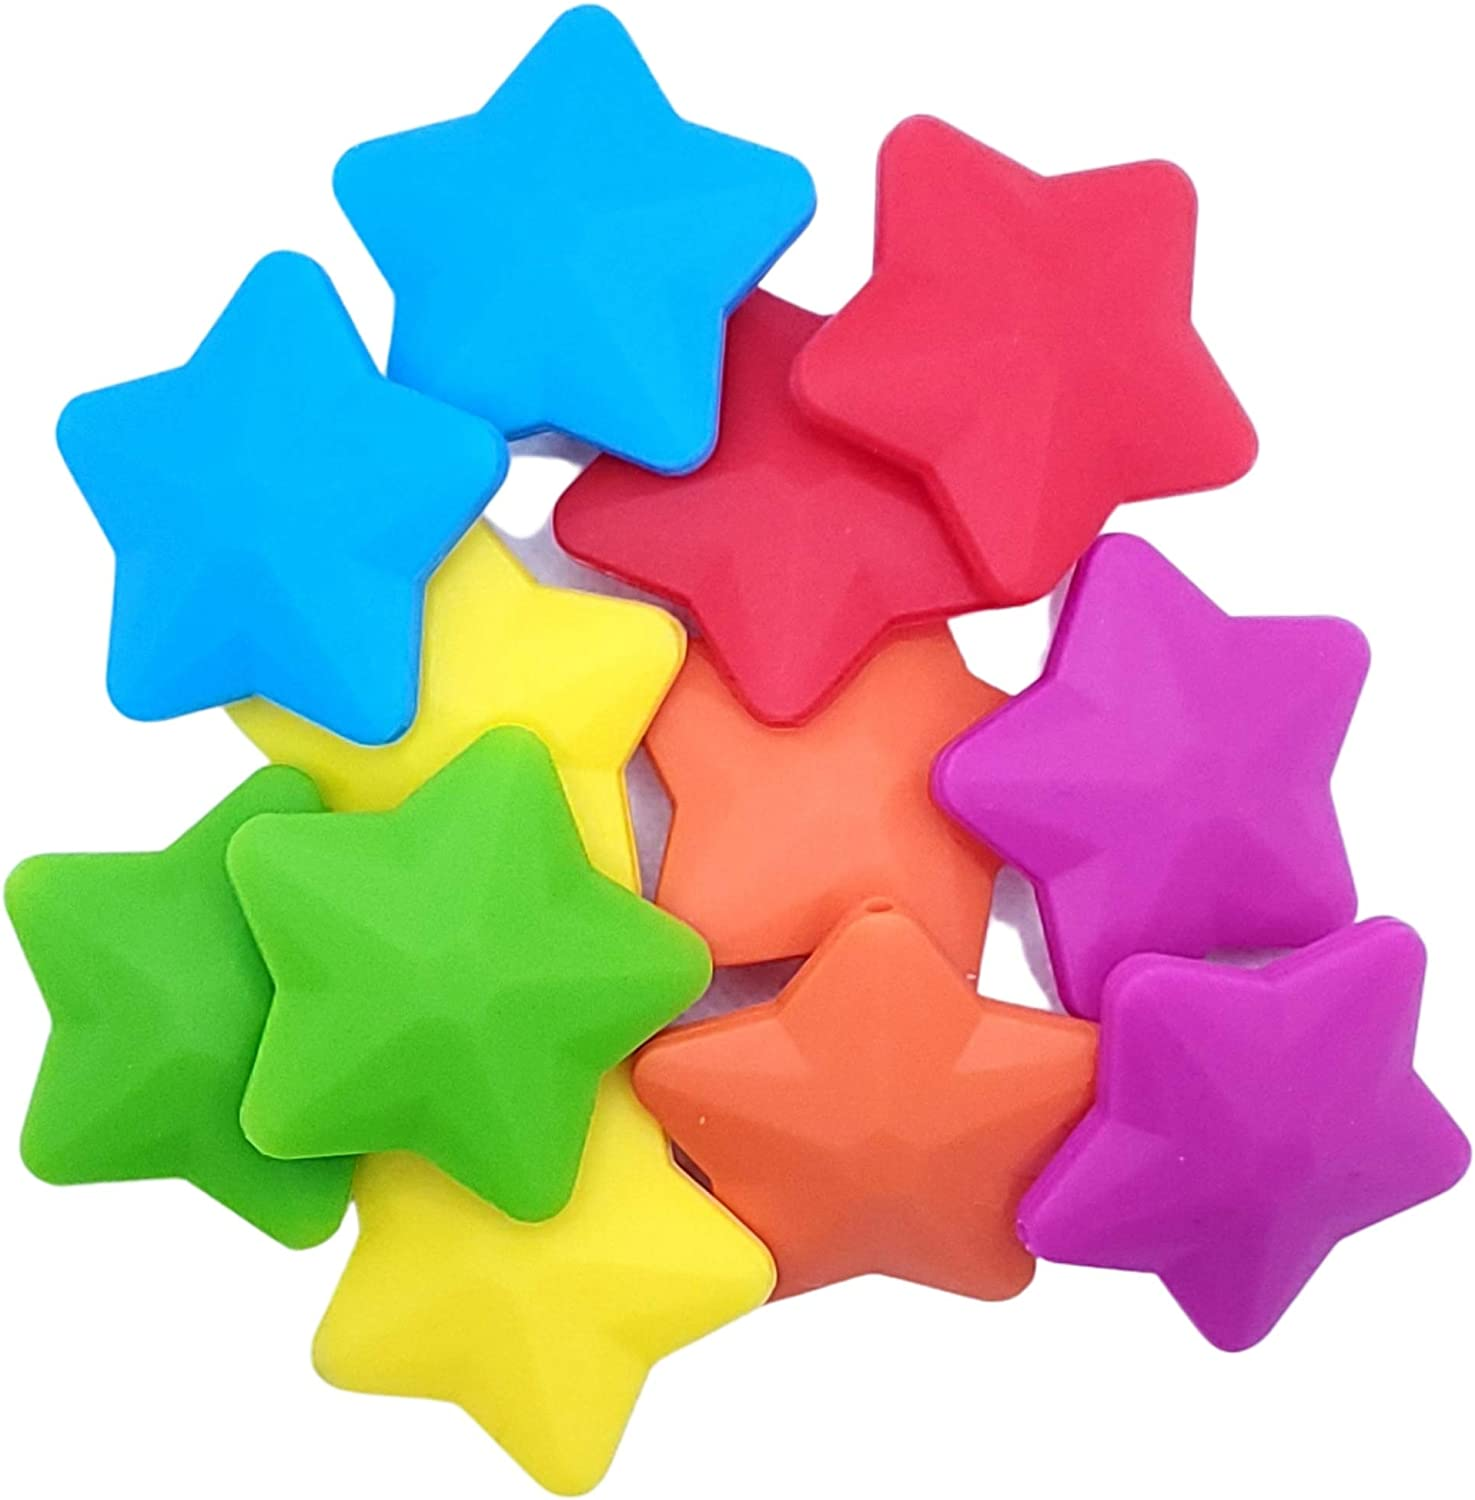 Star Silicone Beads - Jewelry Necklace Bracelet Making Kit - Food Grade BPA Free Arts and Crafts Supplies (12PC Rainbow)